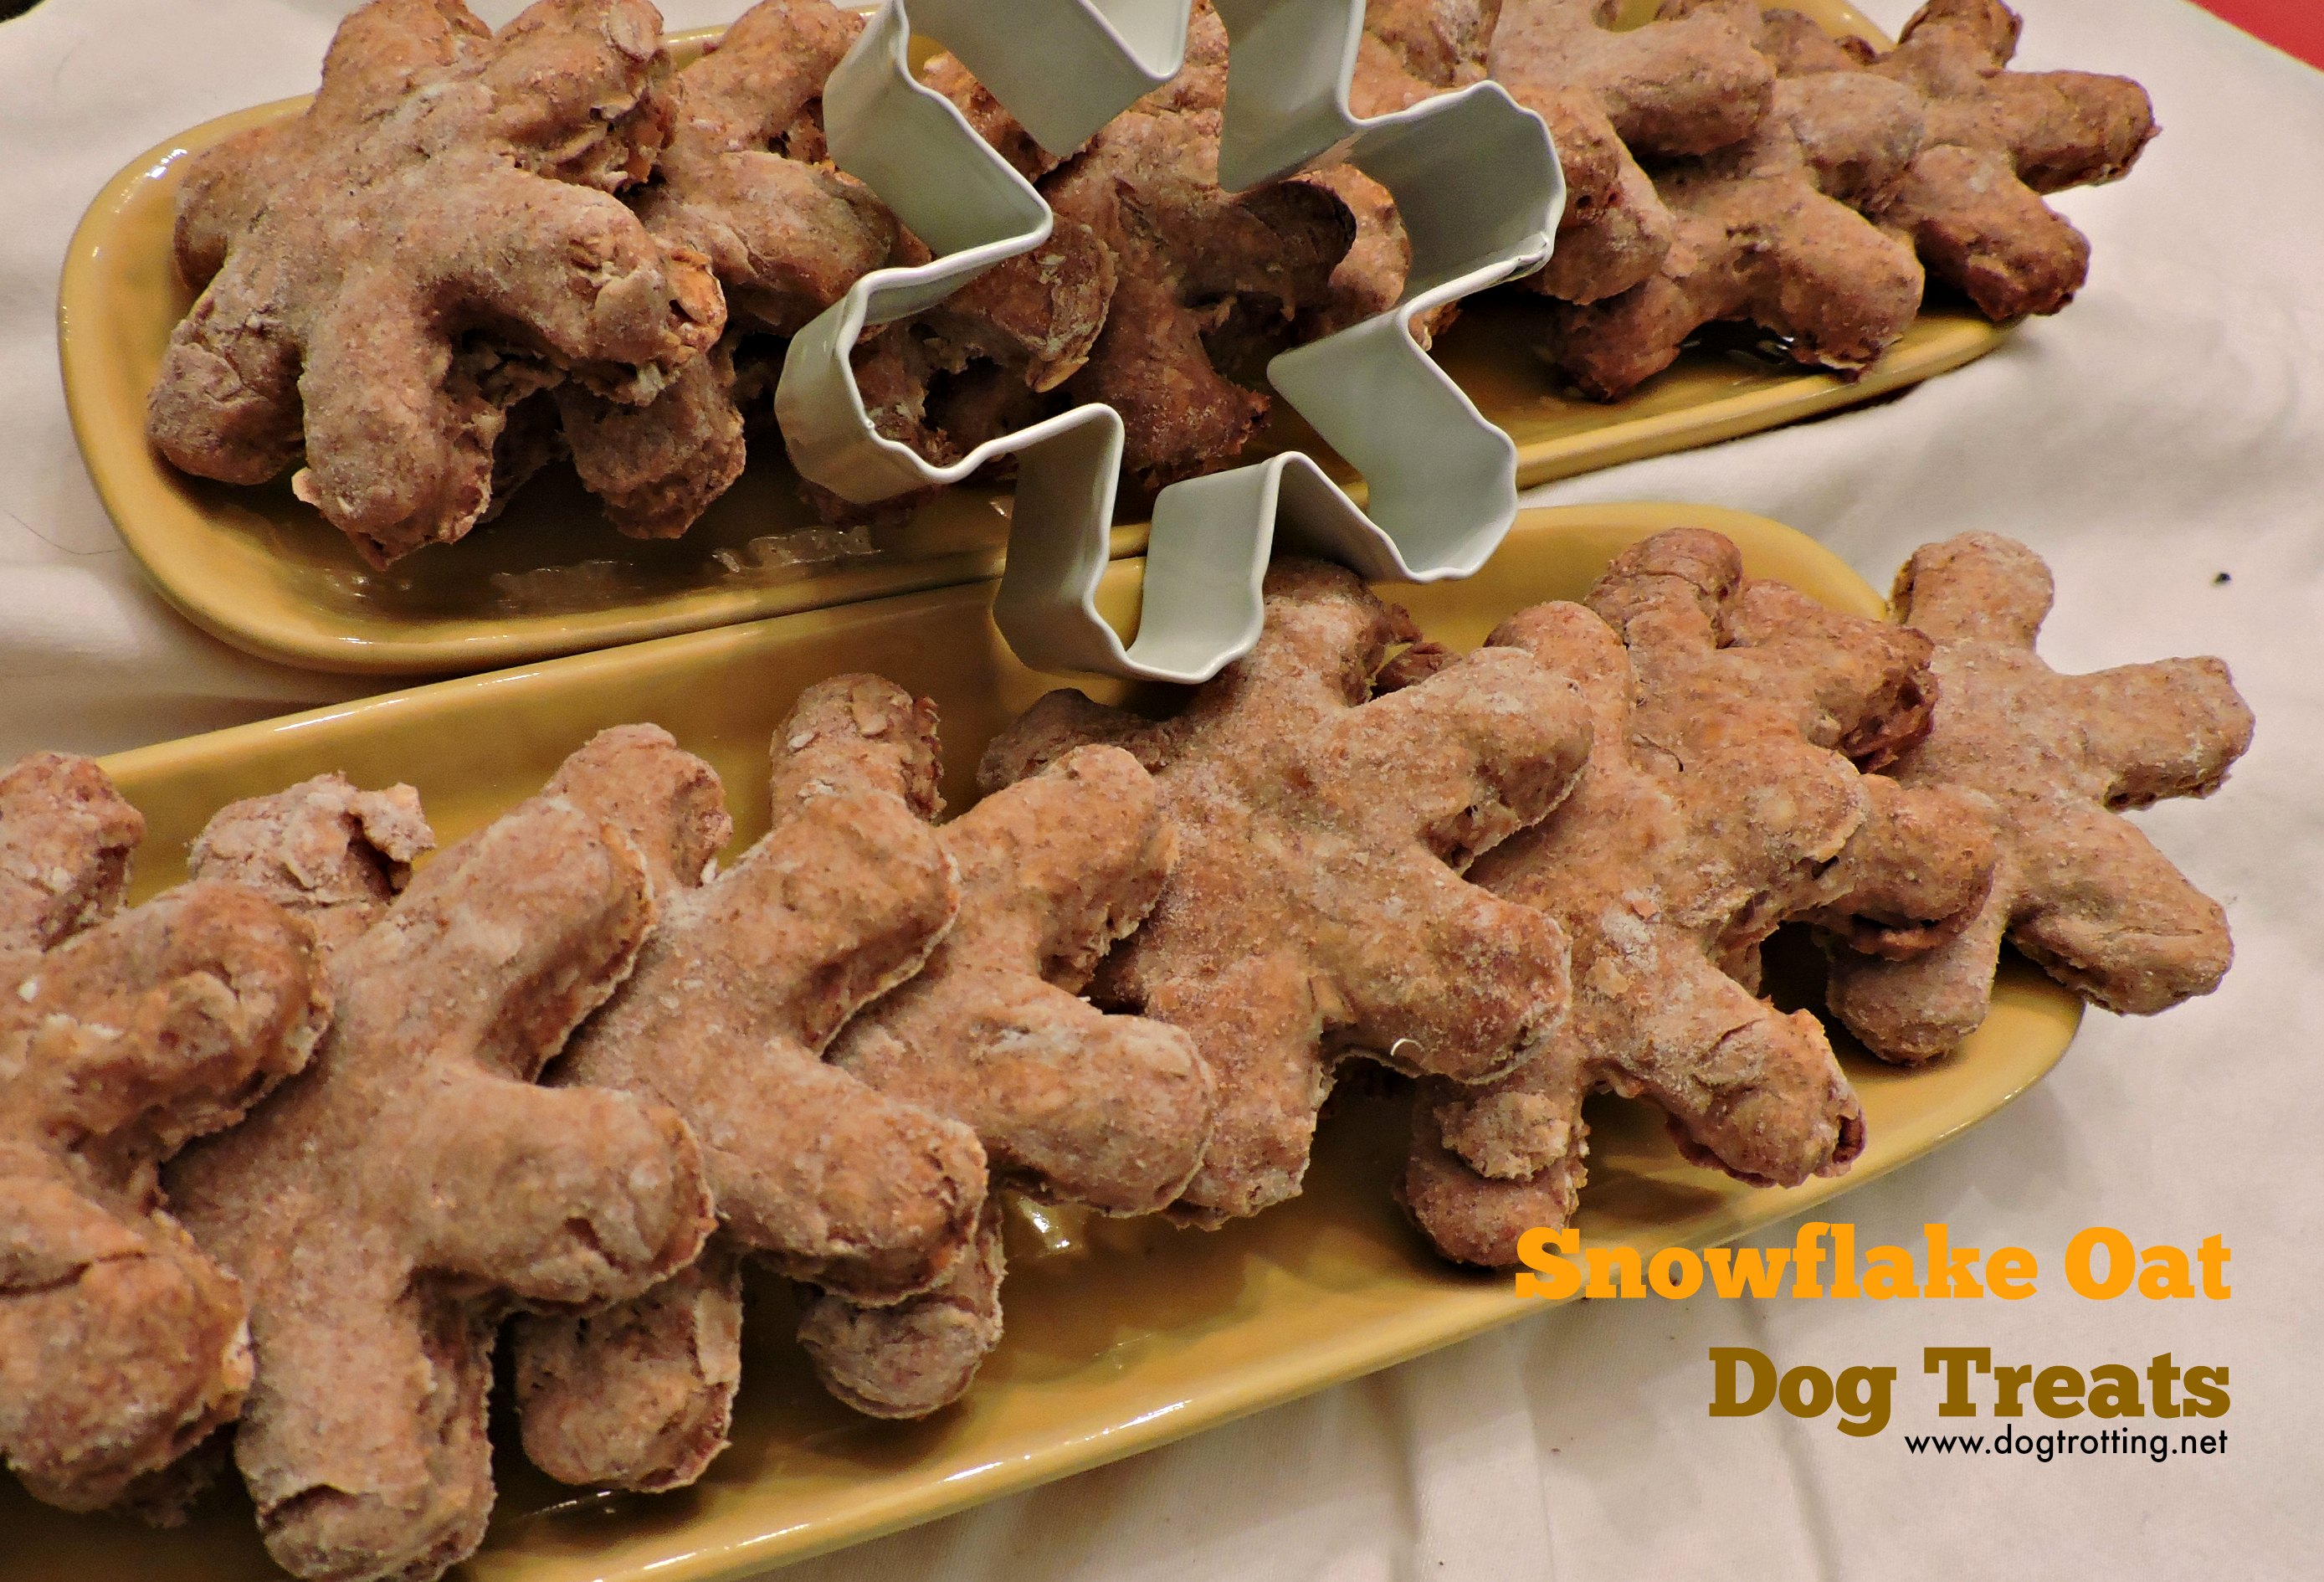 Pup Treats Day 3: Snowflake Oat and Peanut Butter Dog Snacks